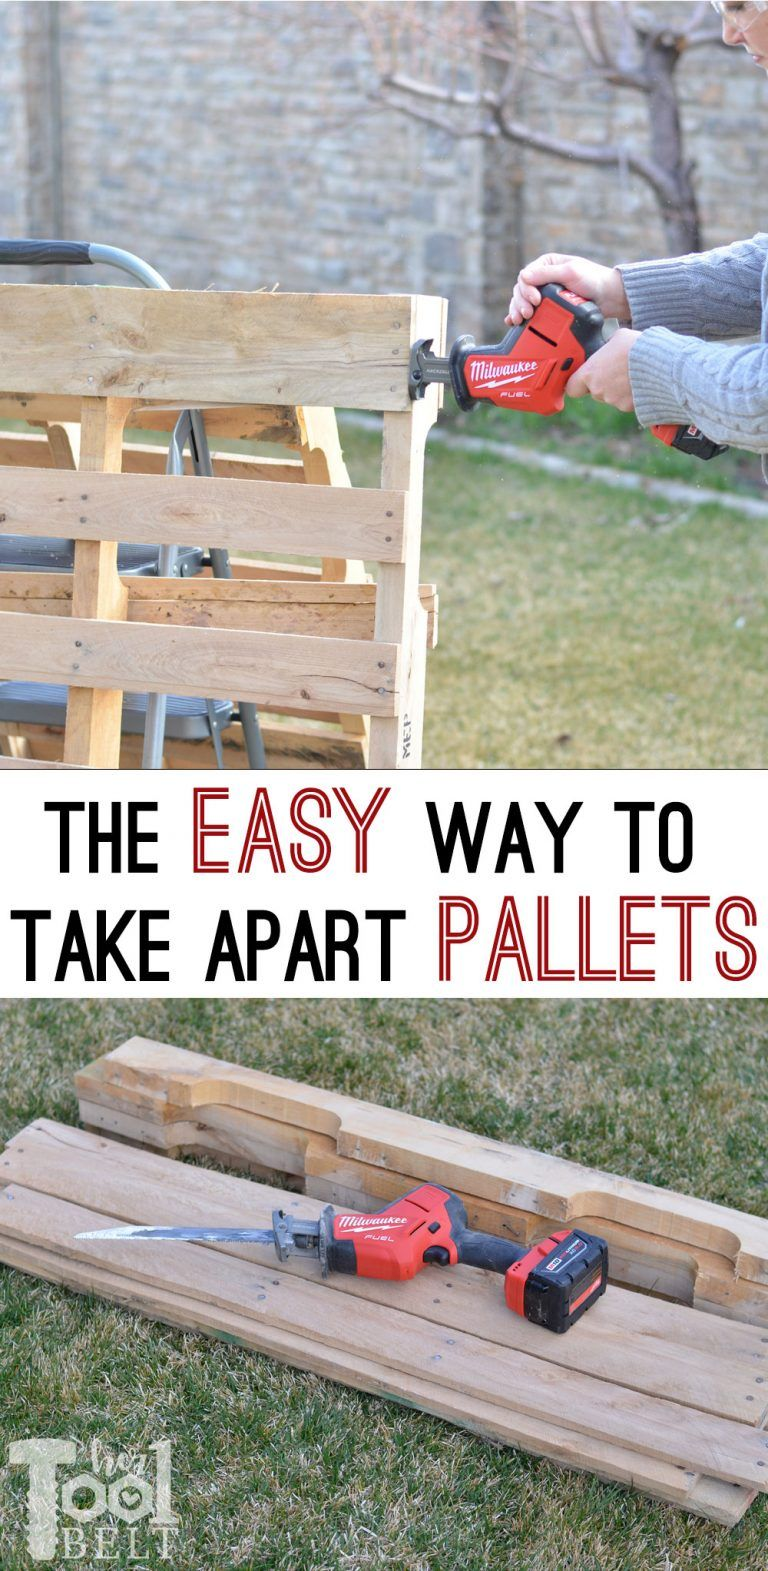 How to take apart pallets easy her tool belt outdoor